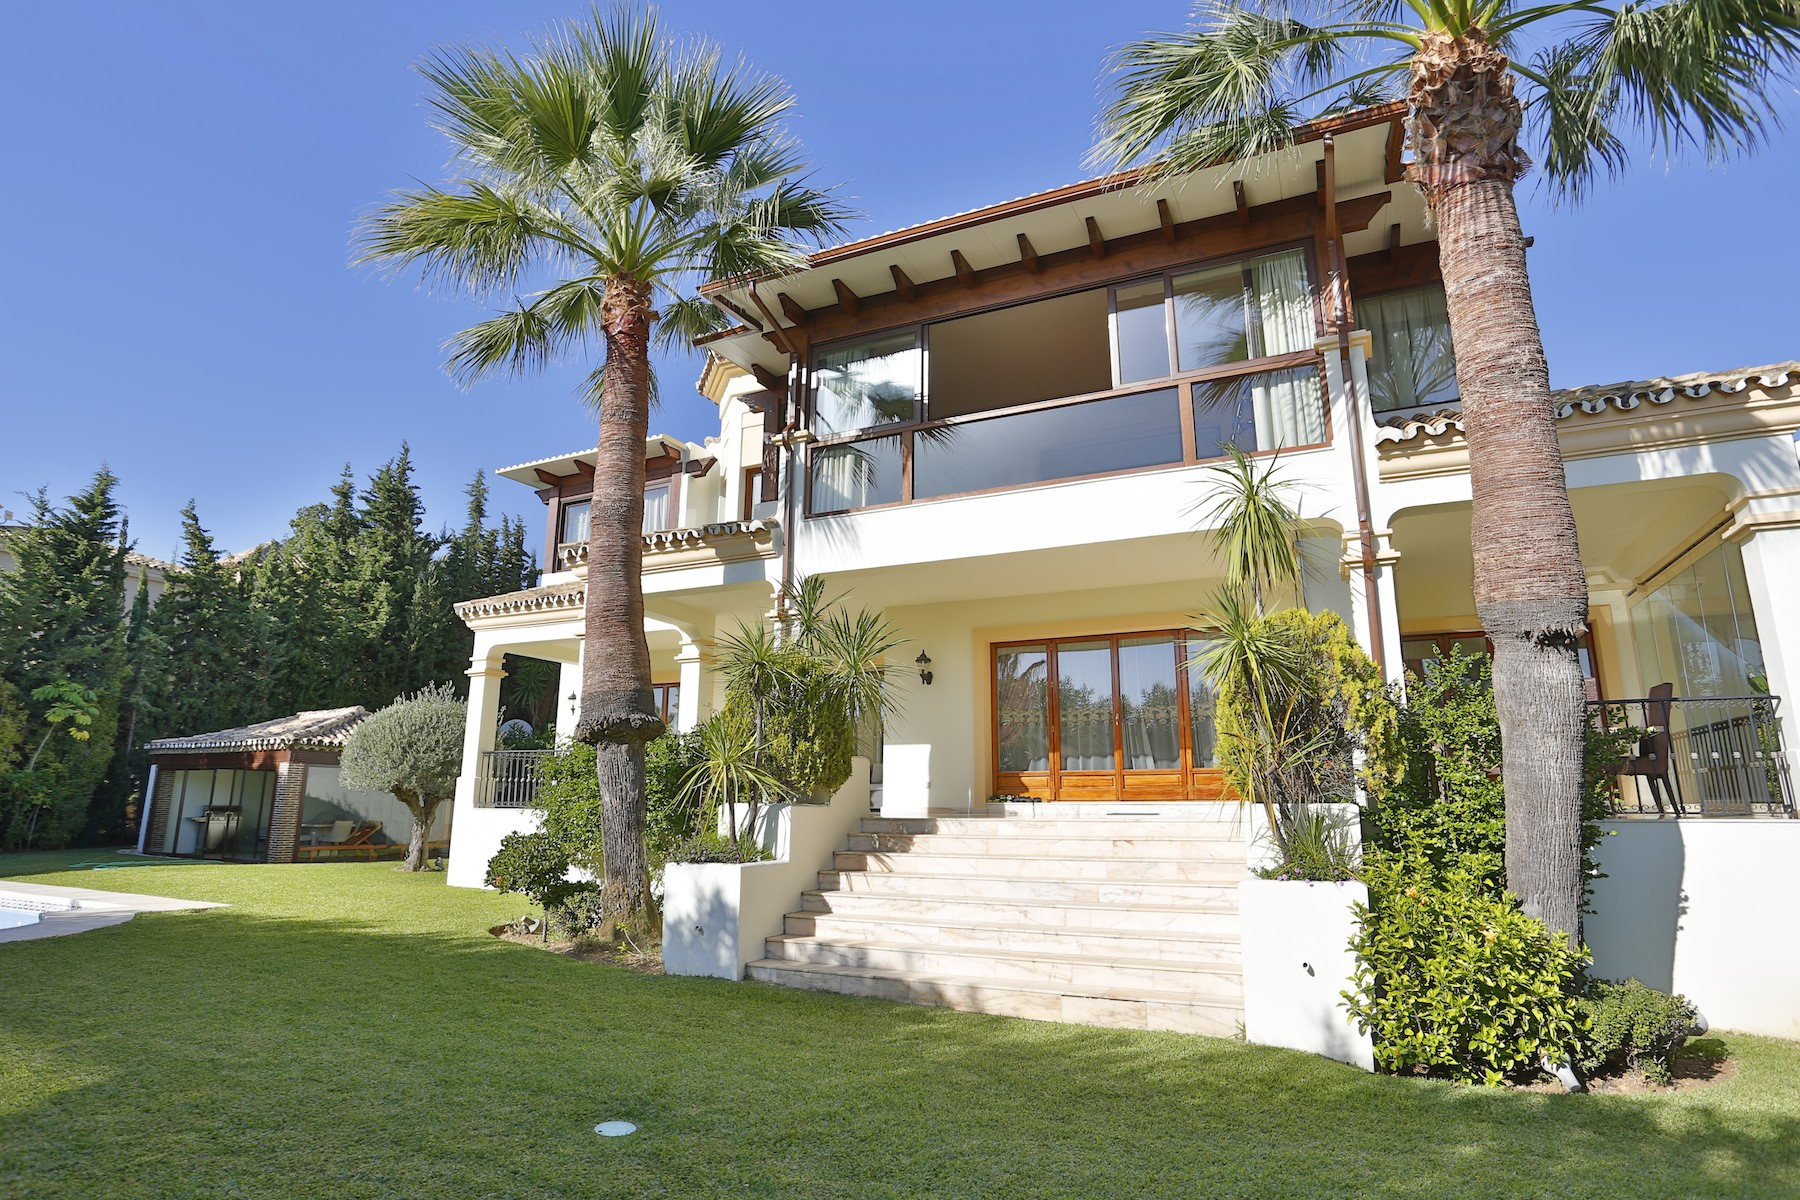 Vivienda unifamiliar por un Venta en Elegant villa situated in the best sought after residential area in Marbella Sierra Blanca, Marbella, Costa Del Sol, 29600 España